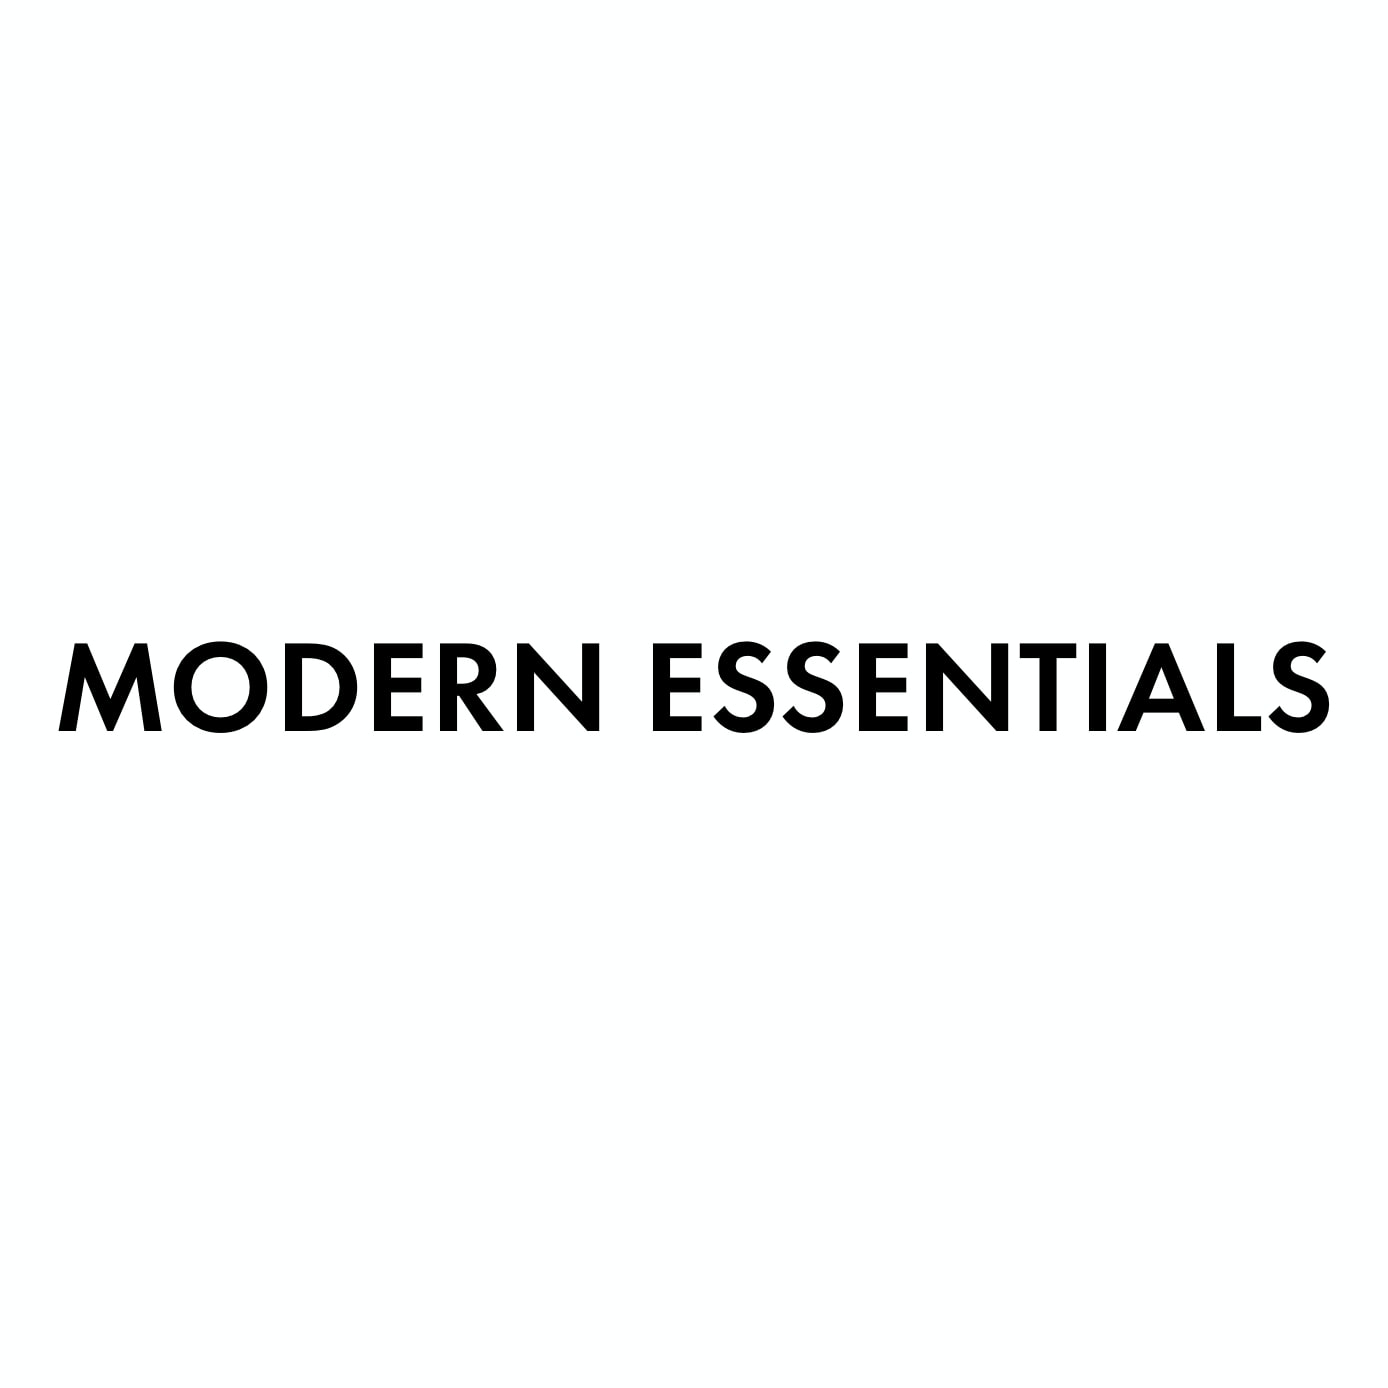 Avatar of user MODERN ESSENTIALS